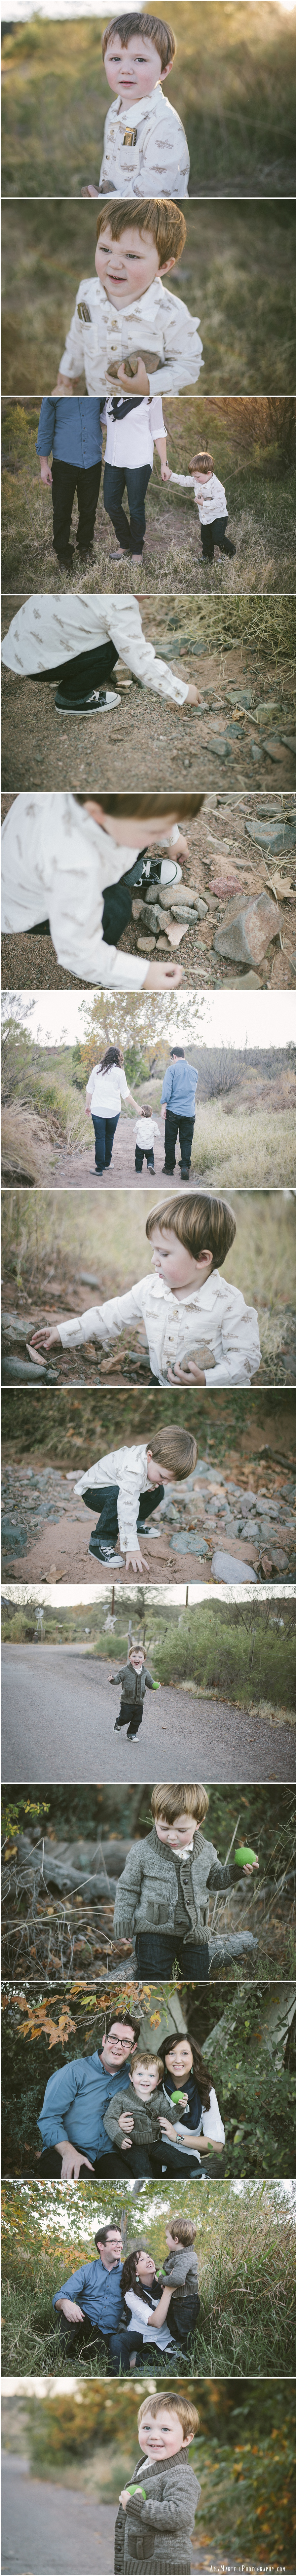 rocks_boy_payson_family_photographer.jpg